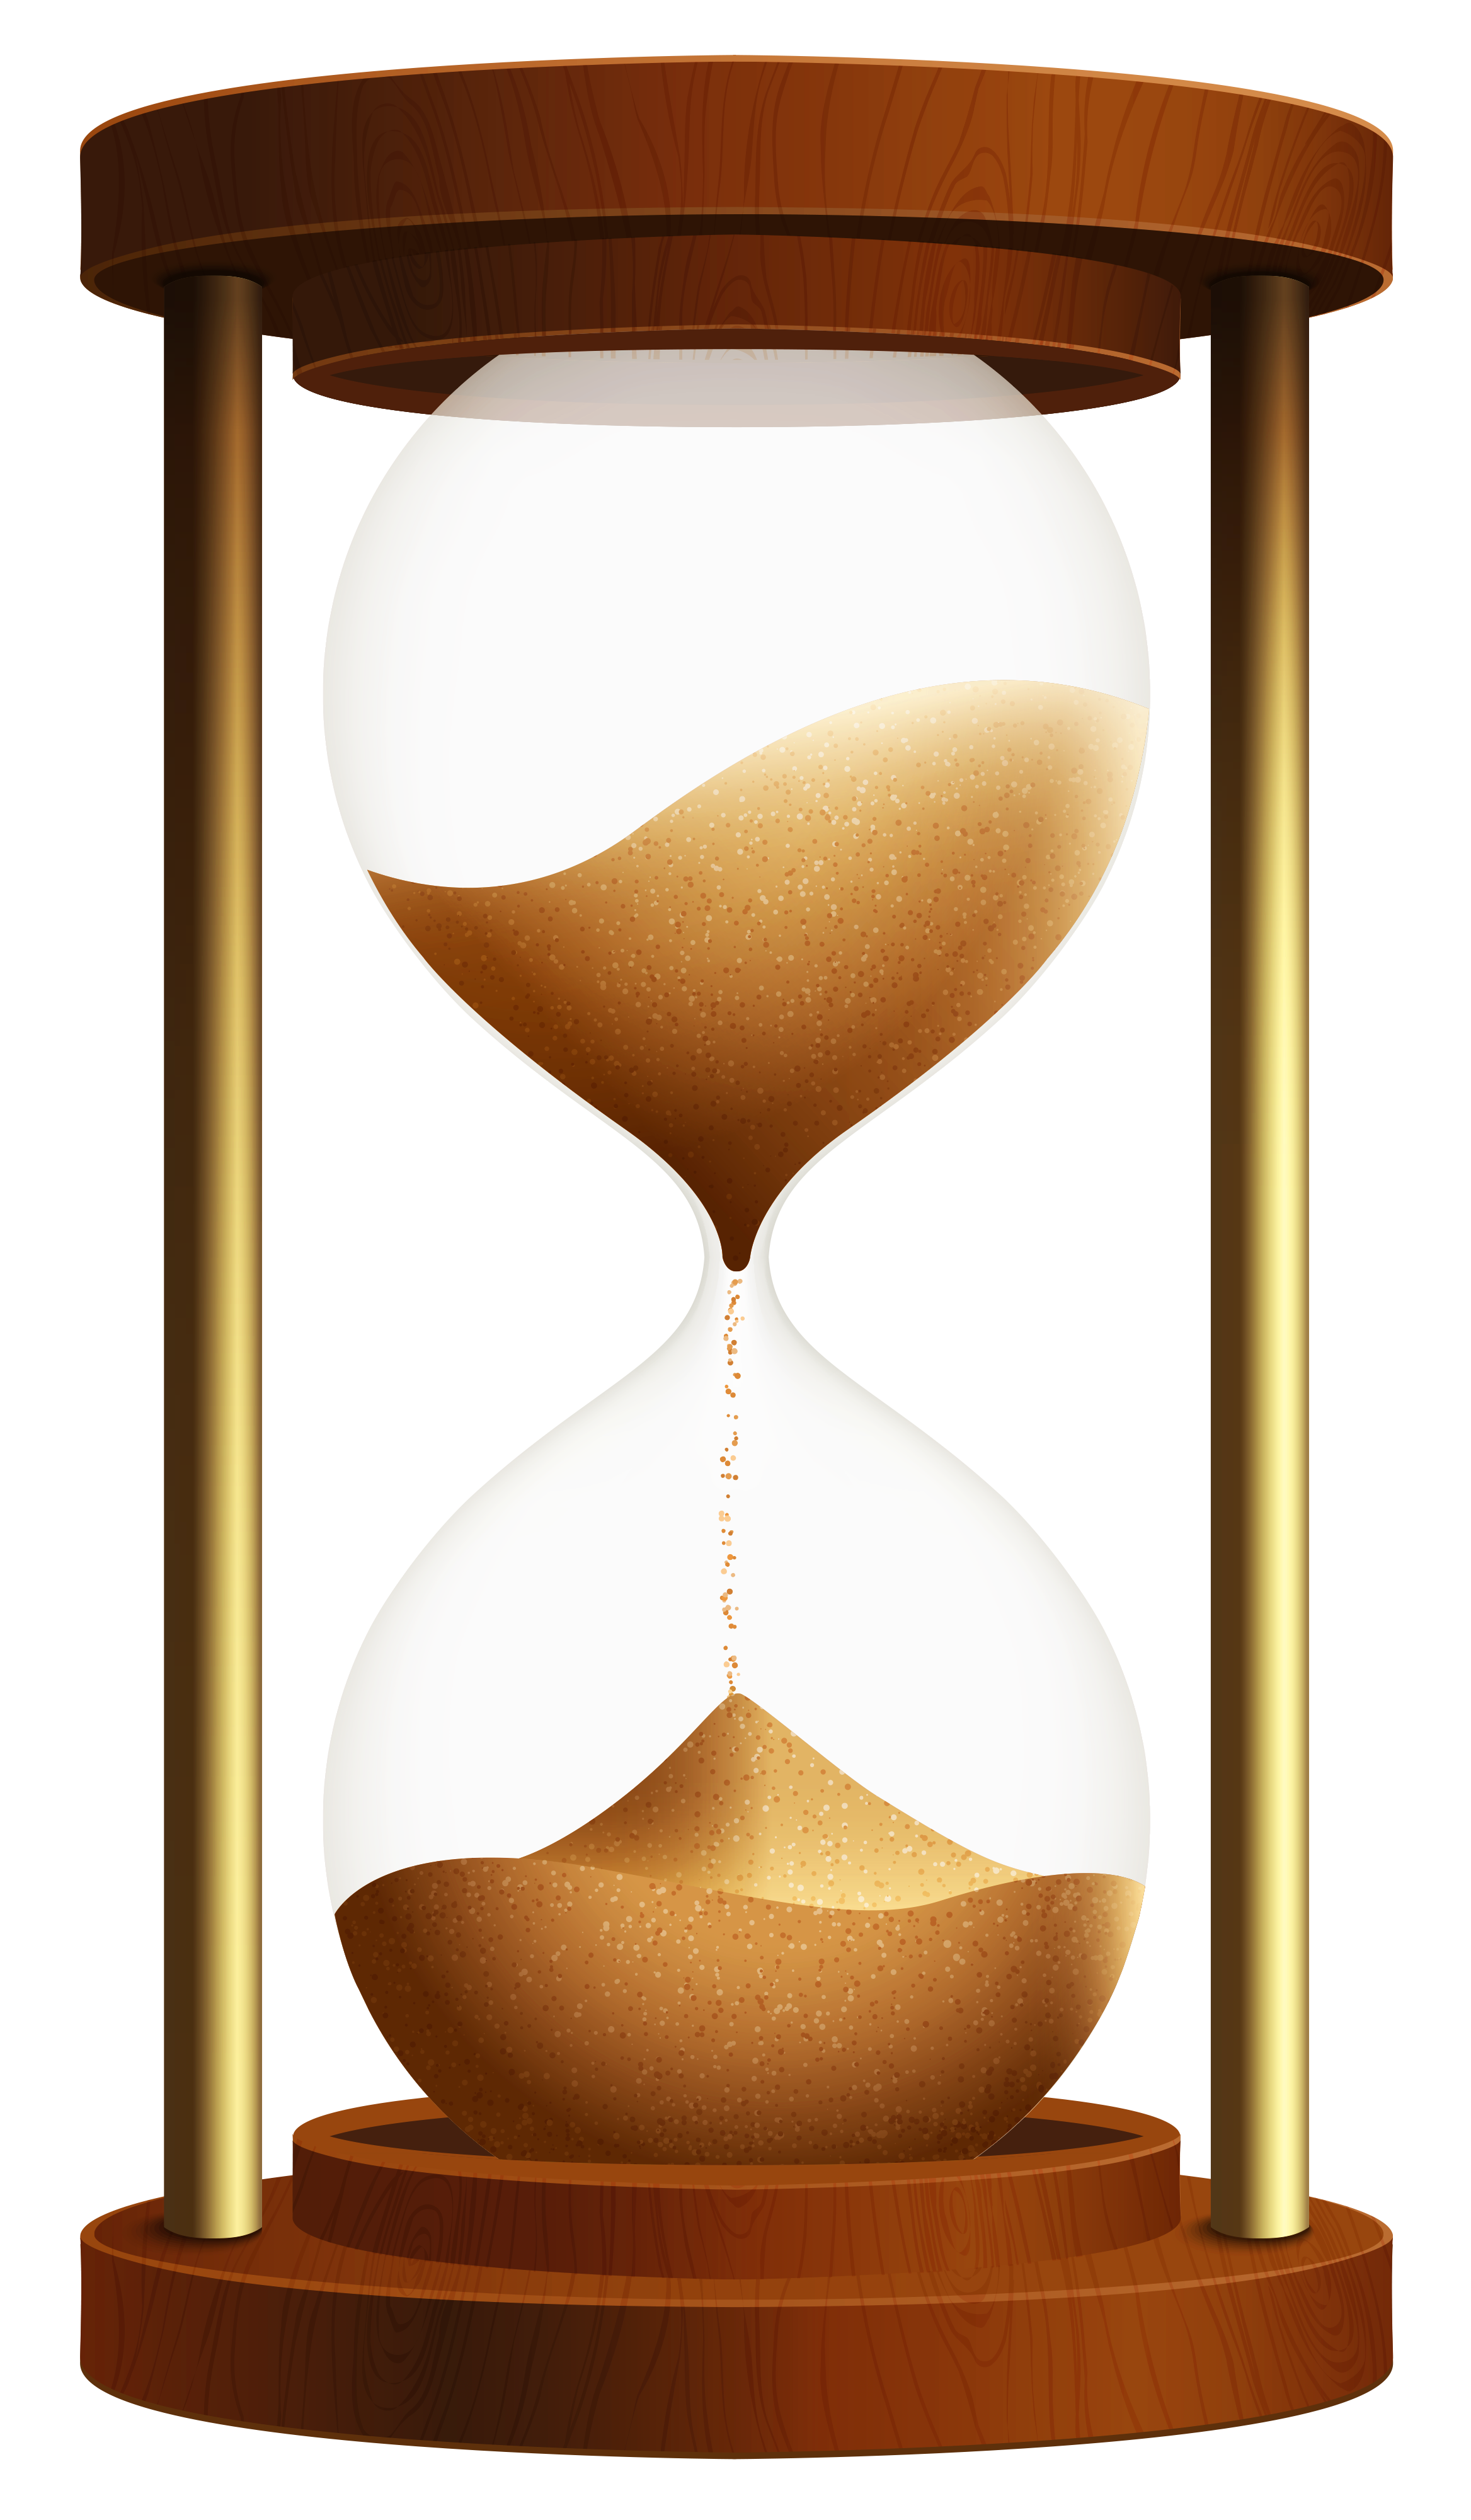 Hourglass - Time Objects